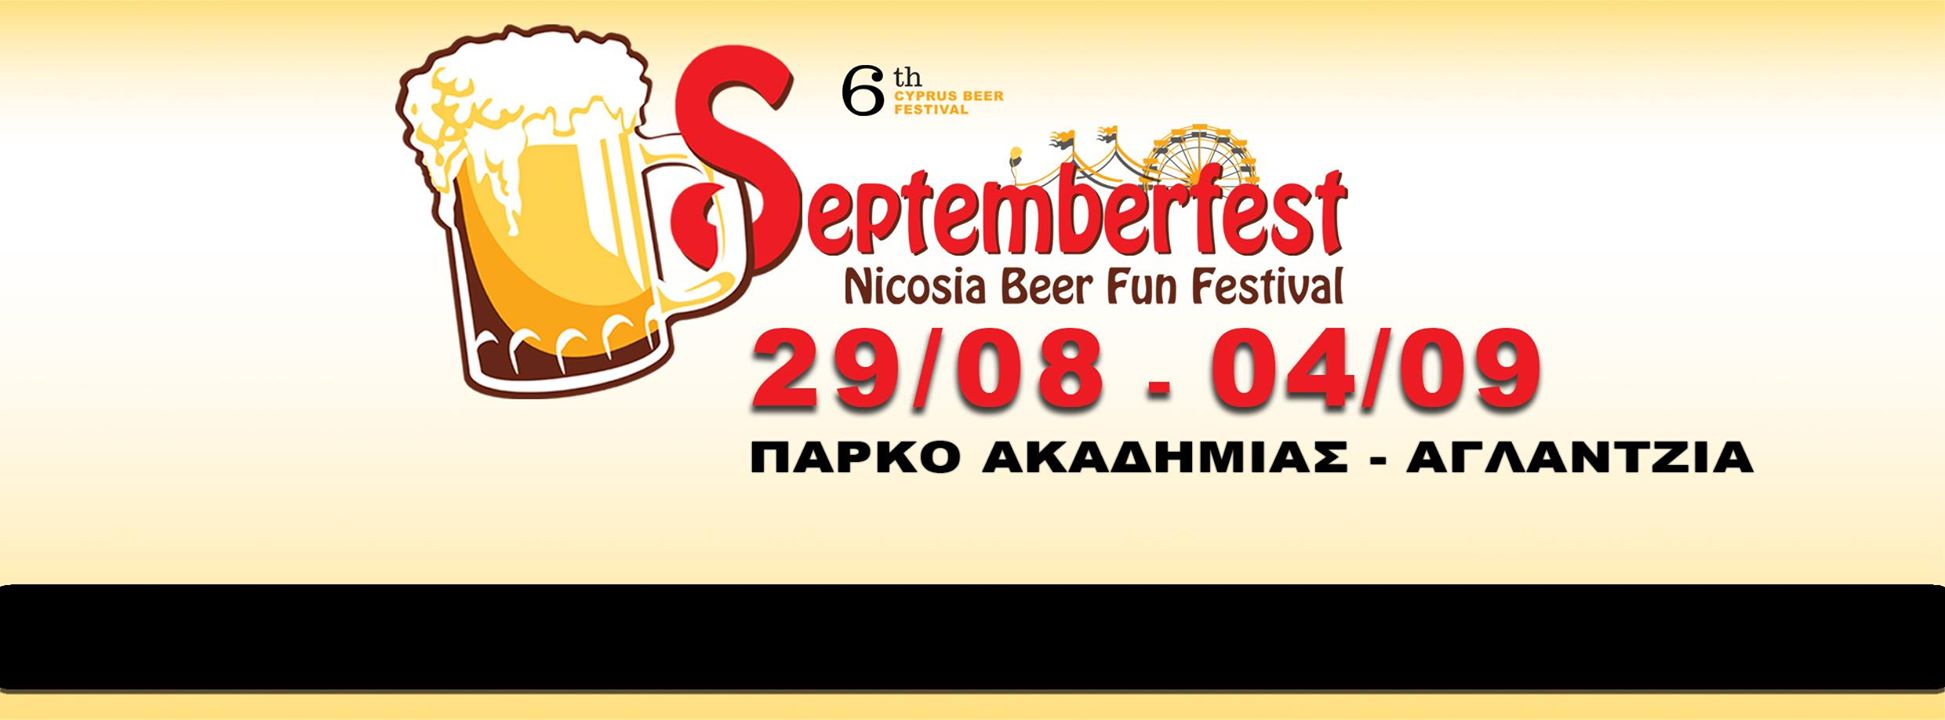 SeptemberFest Cover Image